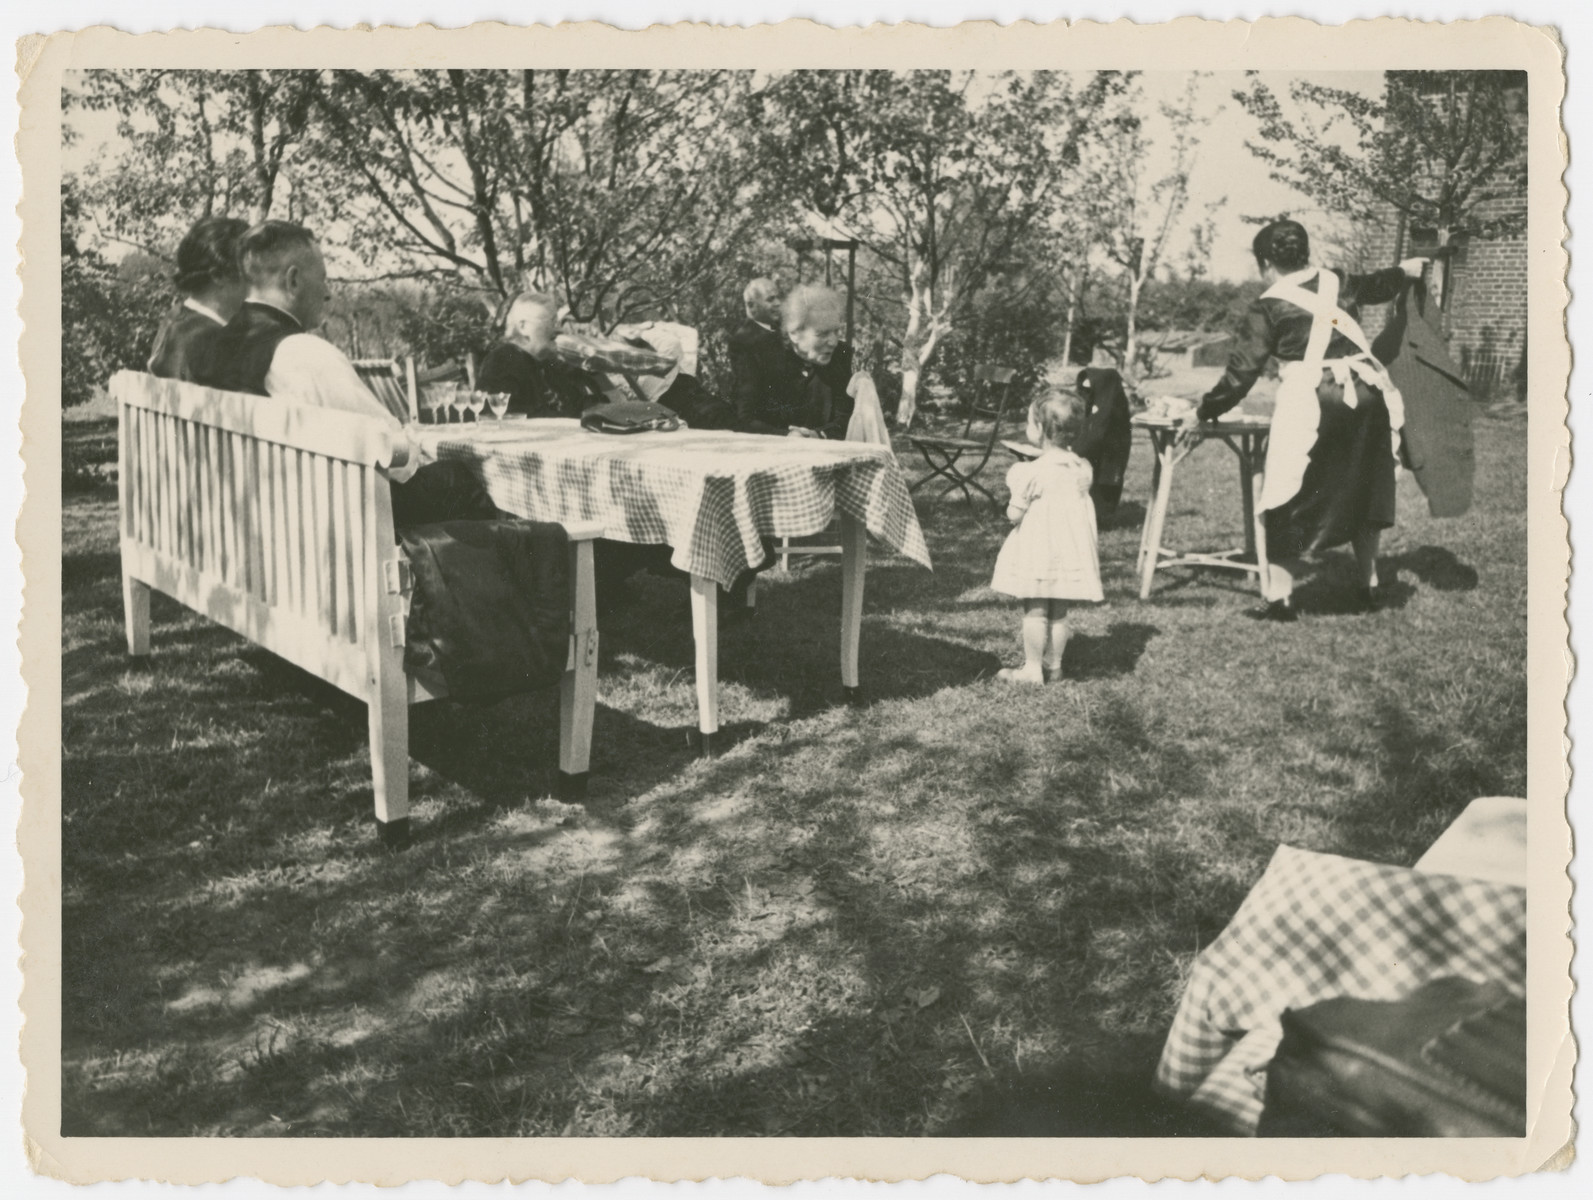 A multi-generational German-Jewish family enjoys a meal outdoors.  Mortiz and Else Gans are pictured on the left with their backs to the camera.  Their mothers are facing them.